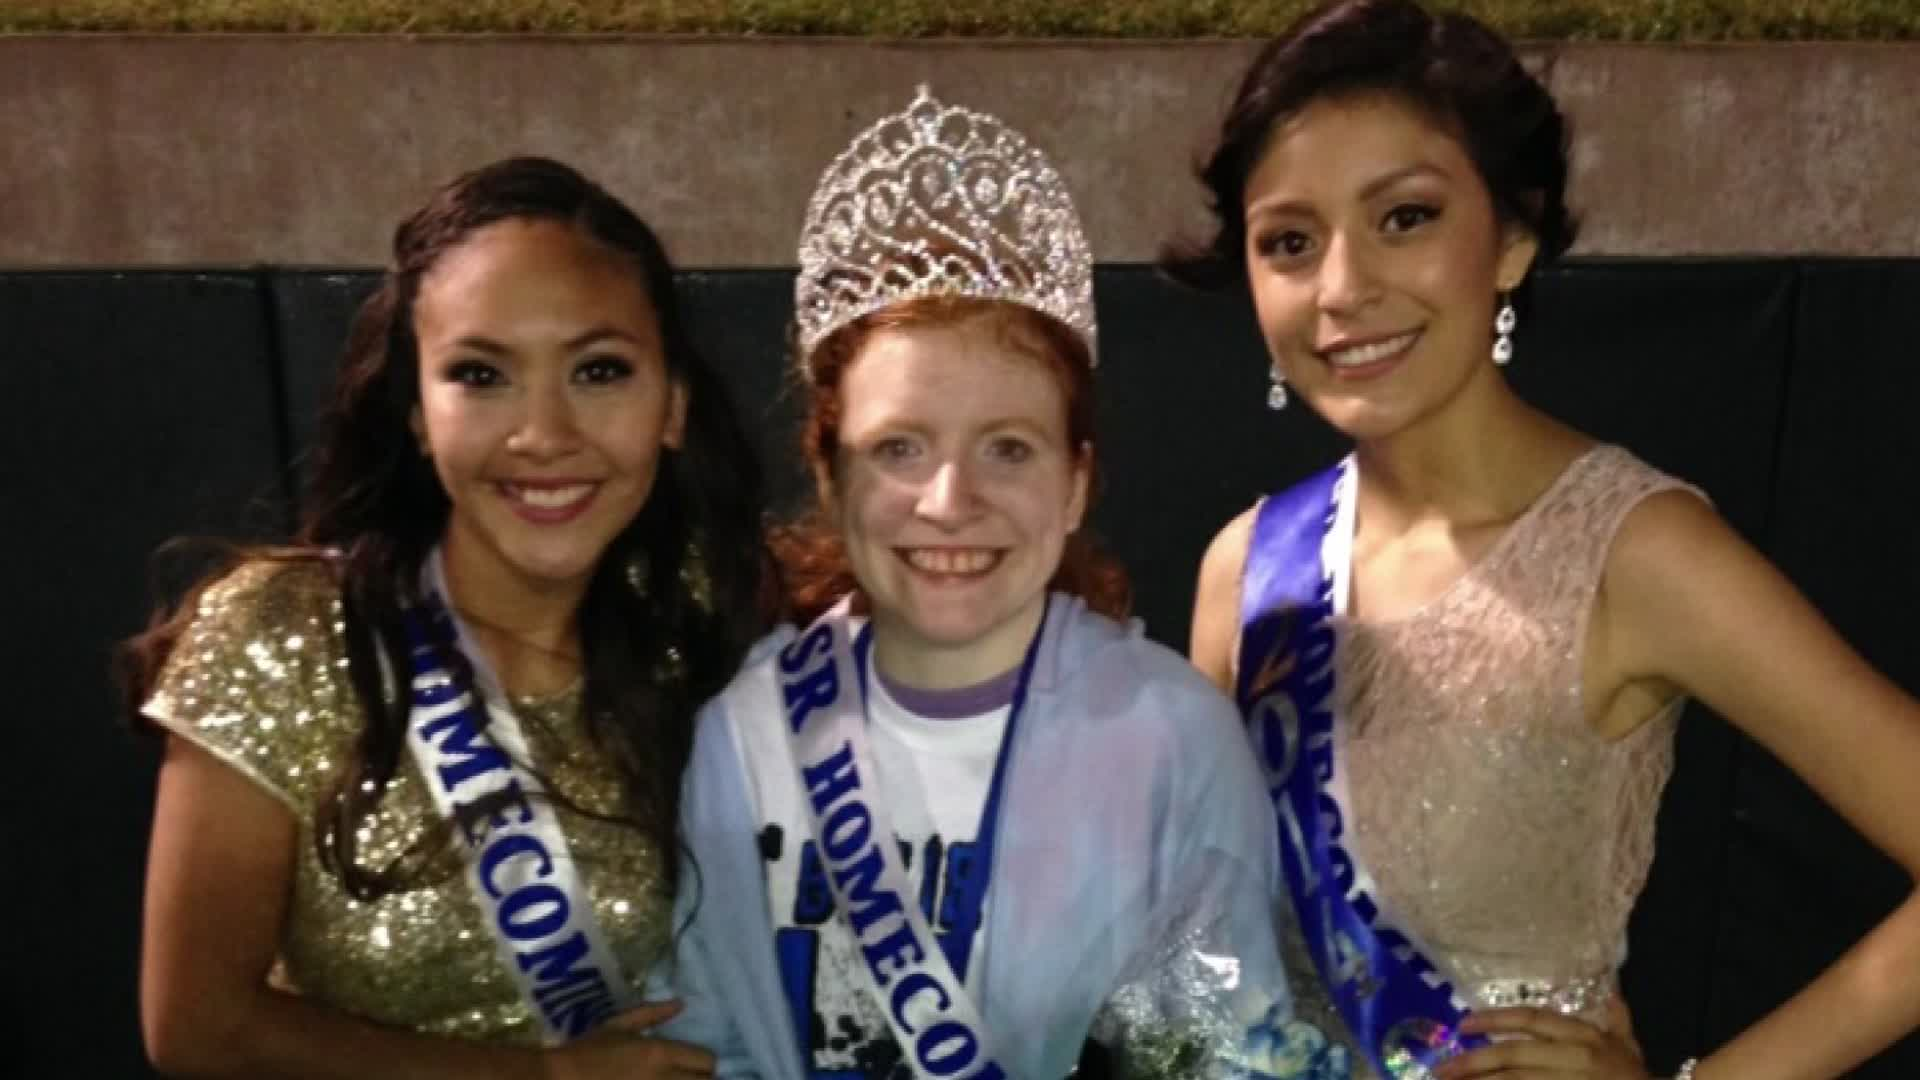 (From left) Naomi Martinez, Lillian Skinner and Anahi Alvarez pose after the Grand Prairie High School homecoming coronation on Friday, Sept. 12.